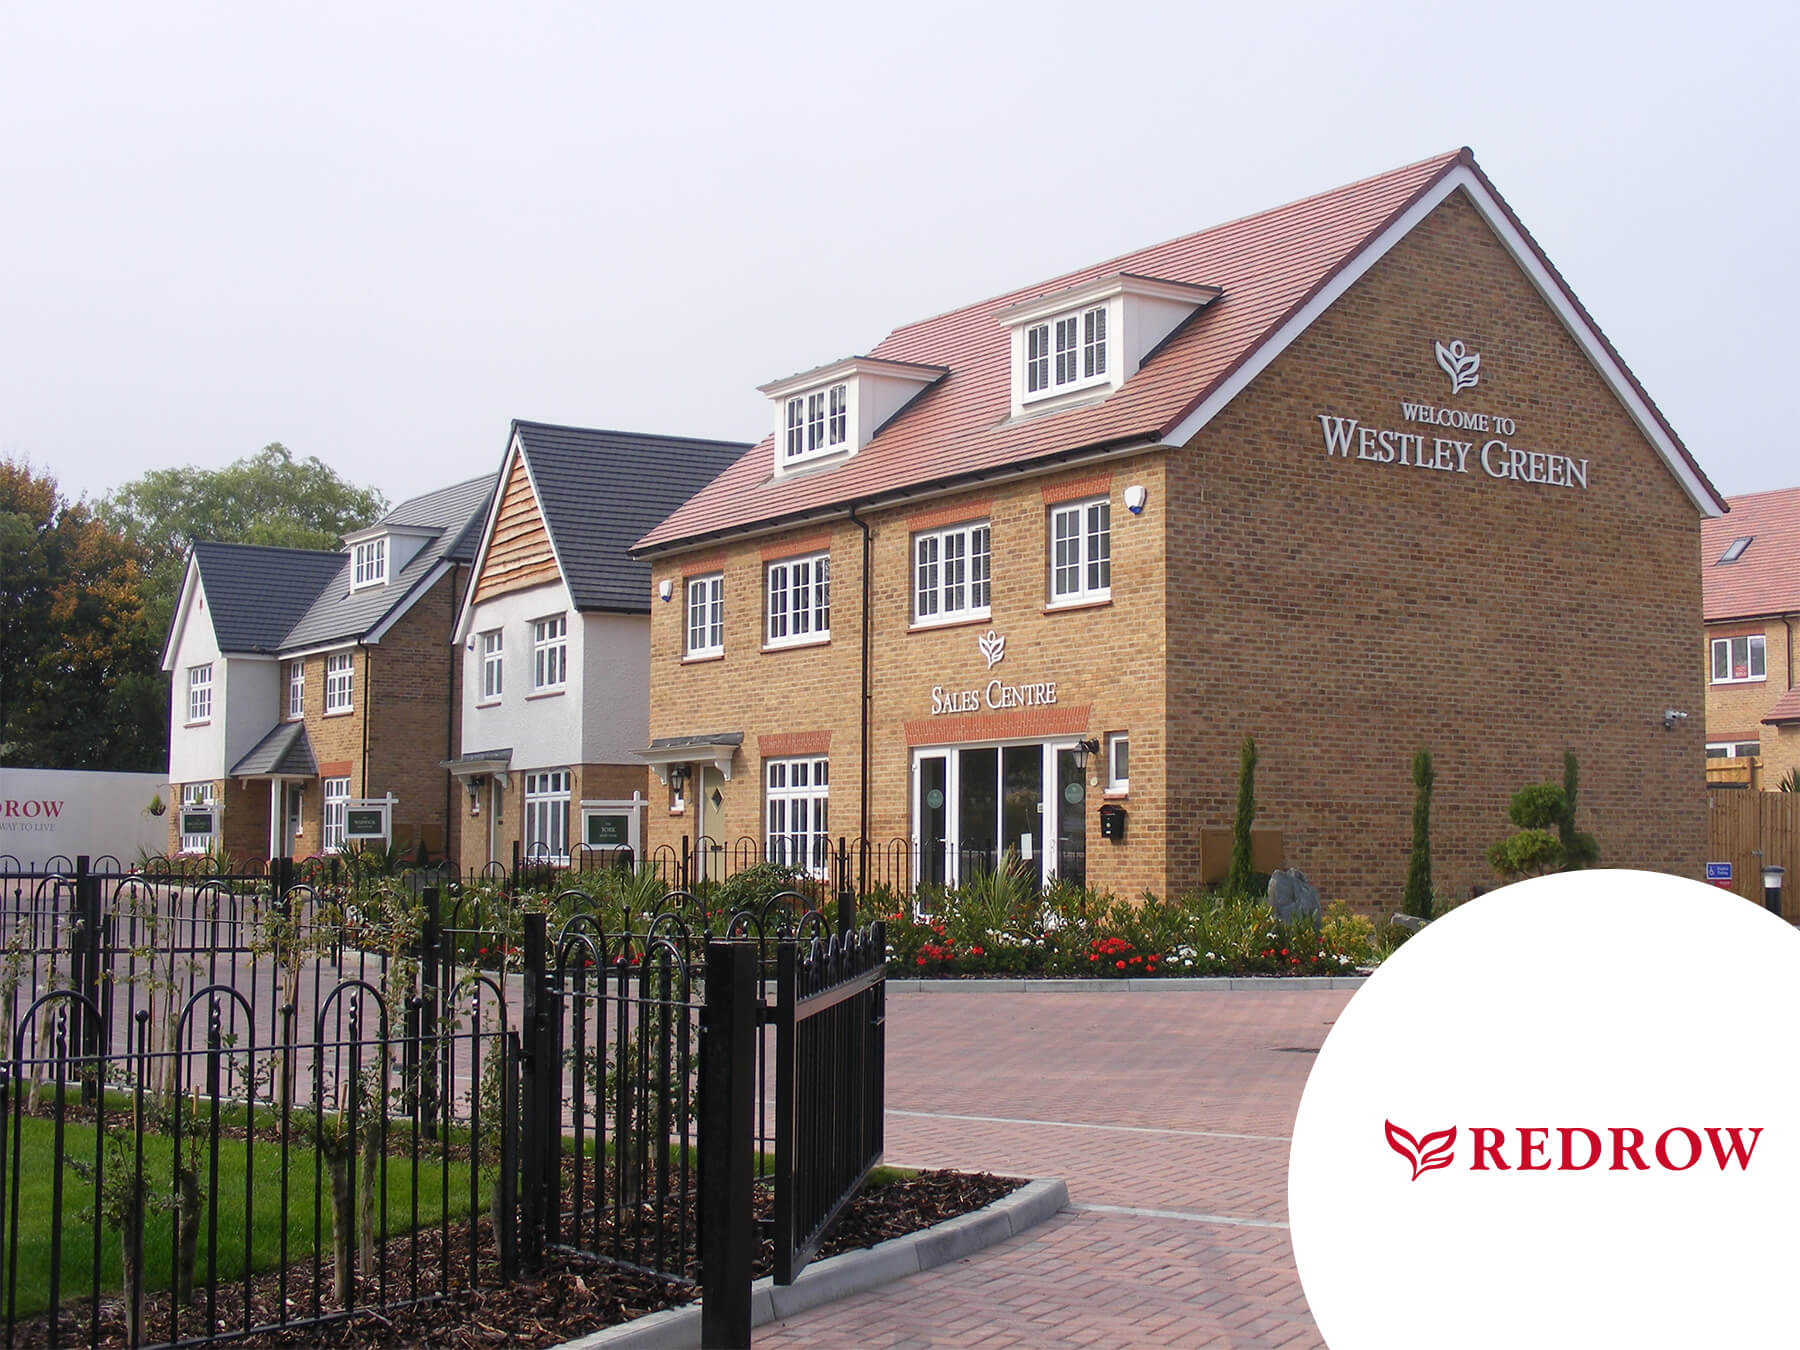 Redrow houses at Westley Green